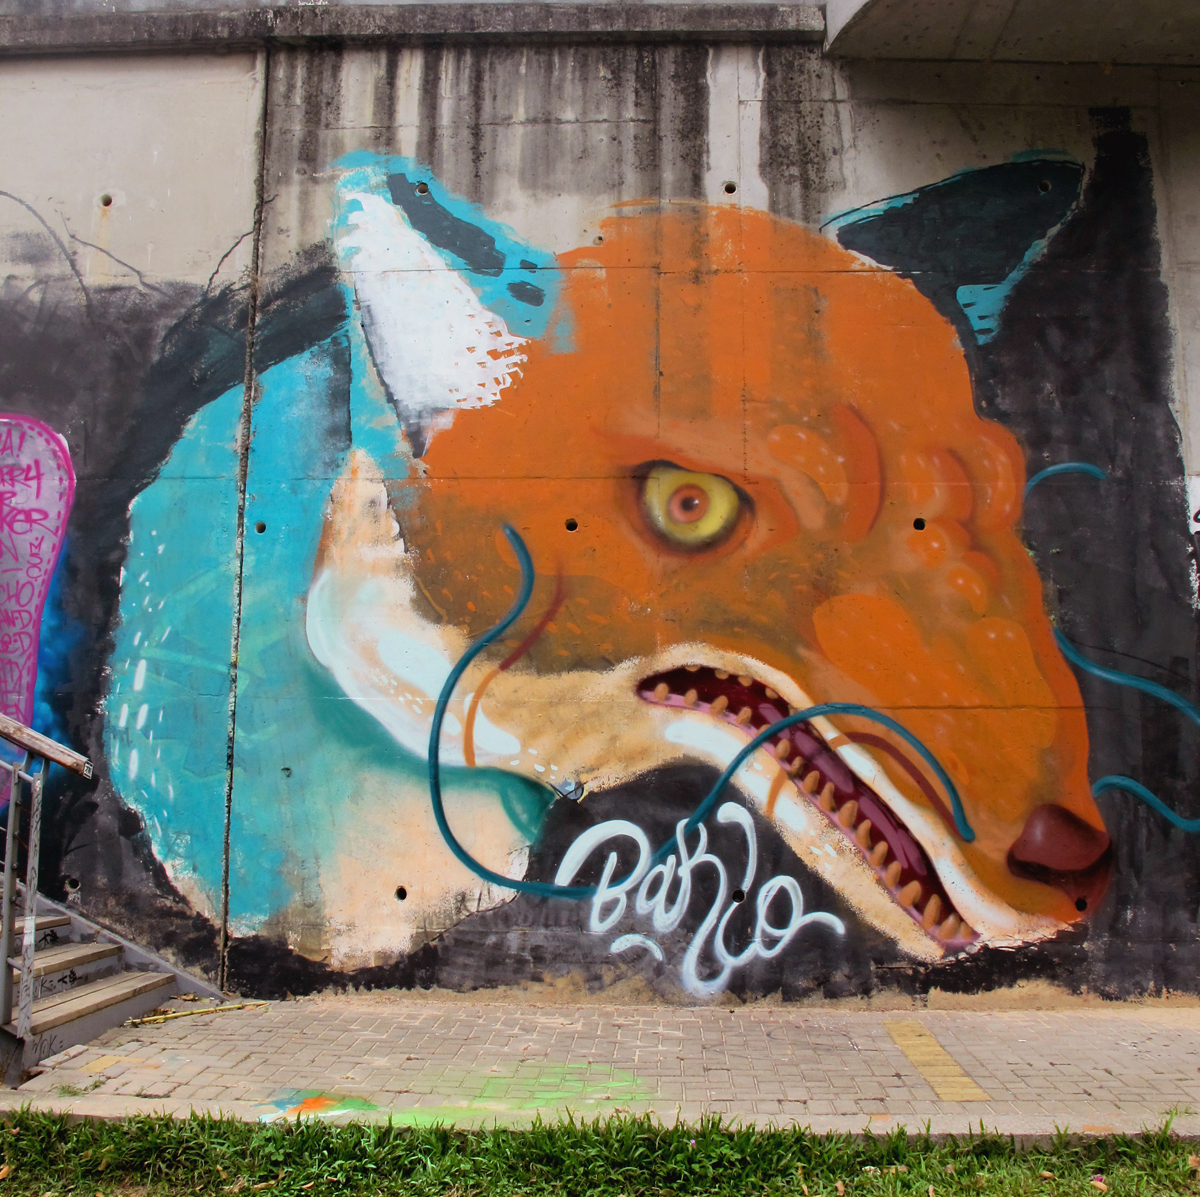 barlo-new-mural-in-shenzhen-china-01